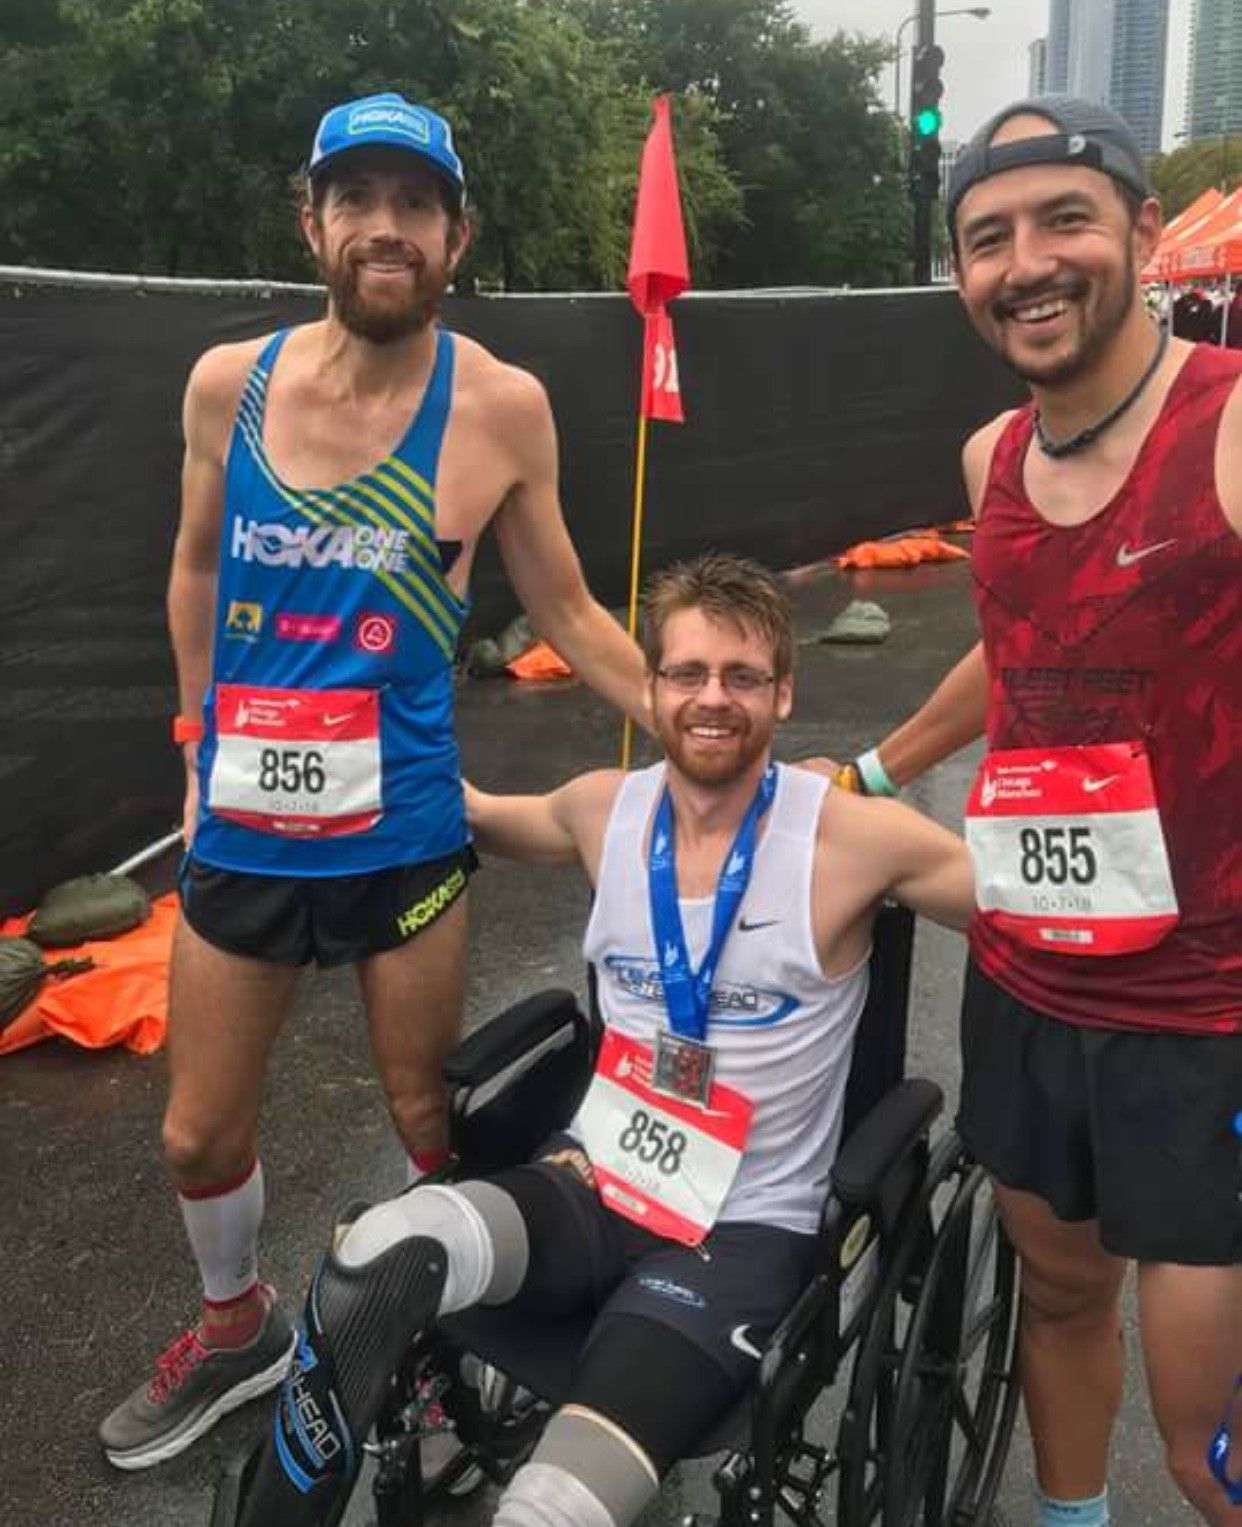 Brian Reynolds is a double amputee and Runs 3:03:23 at the Chicago Marathon